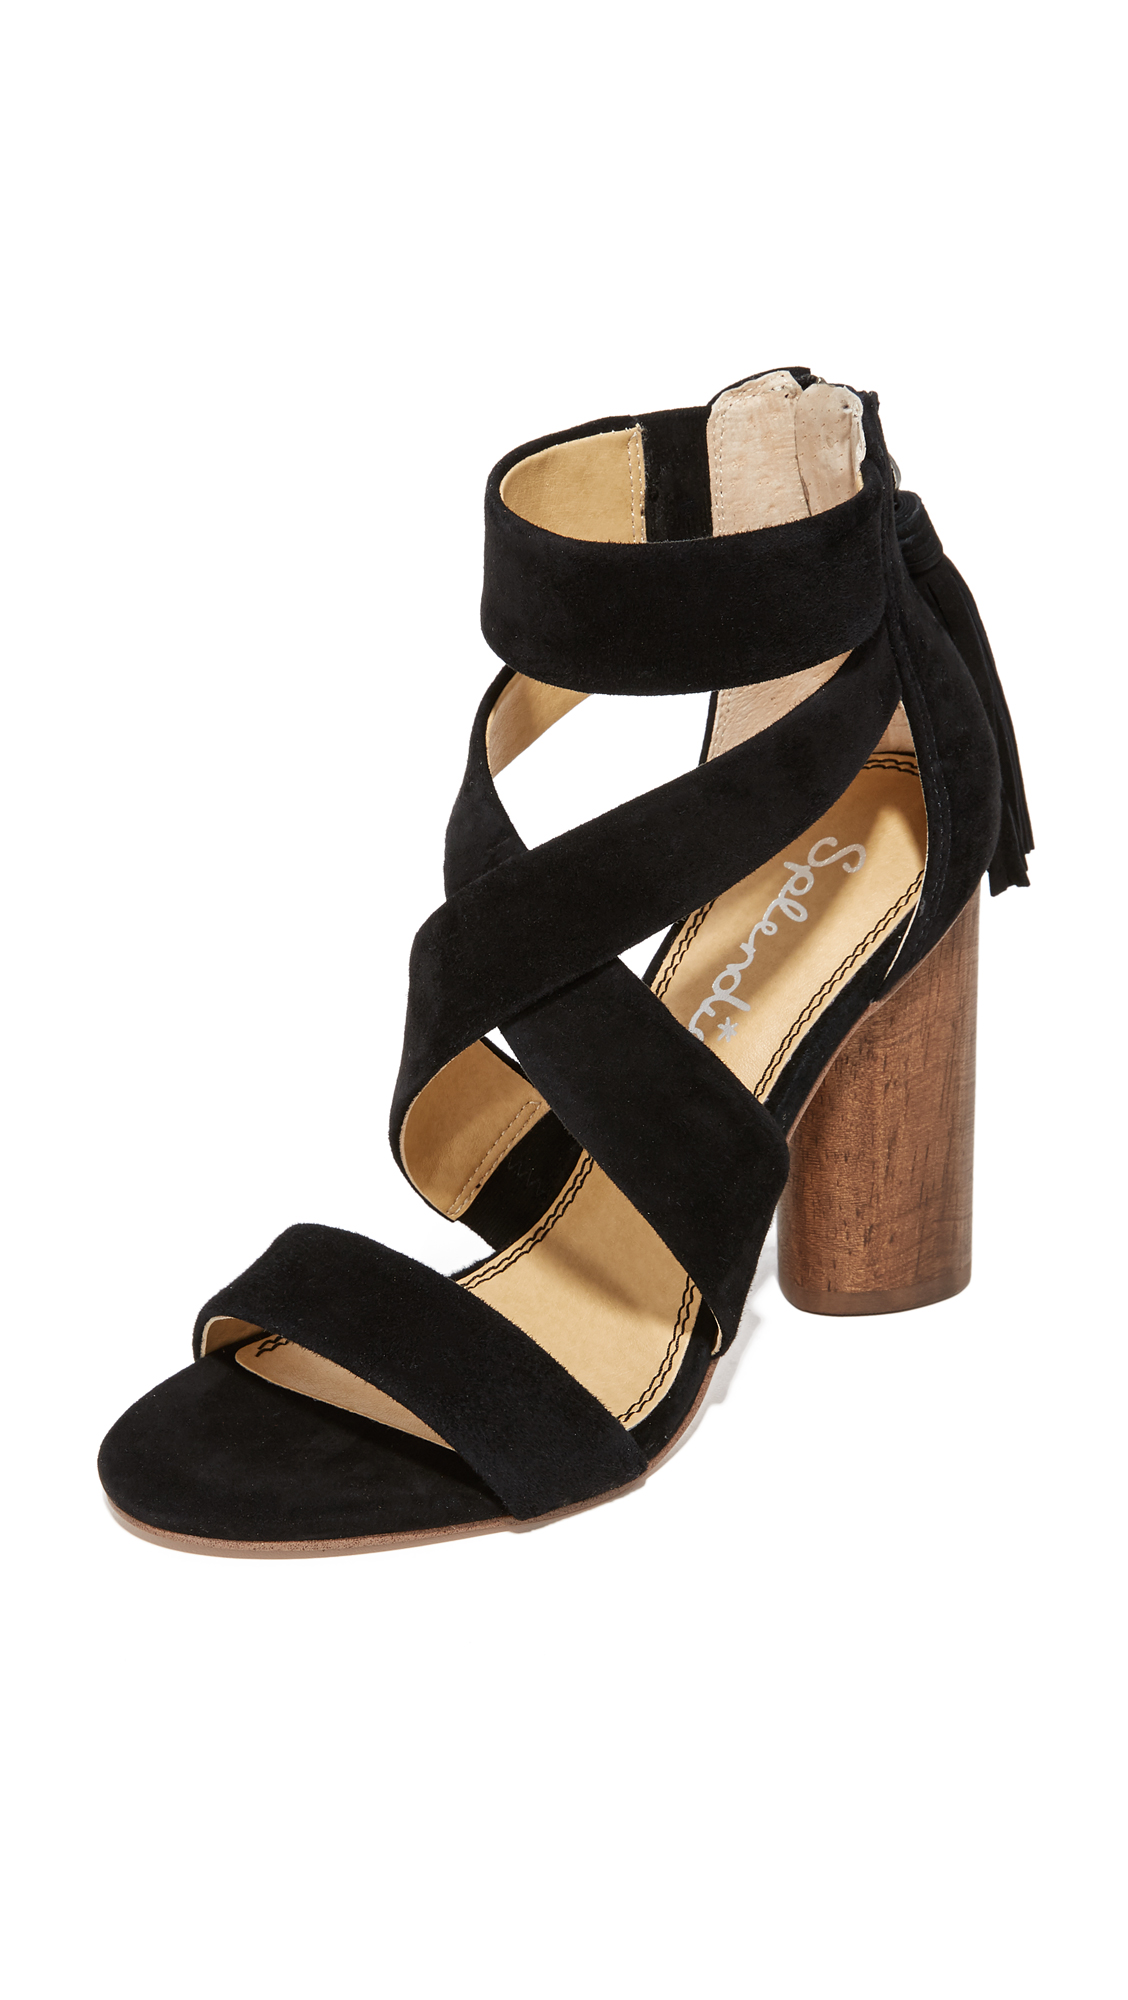 Splendid Jara Heeled Sandals - Black